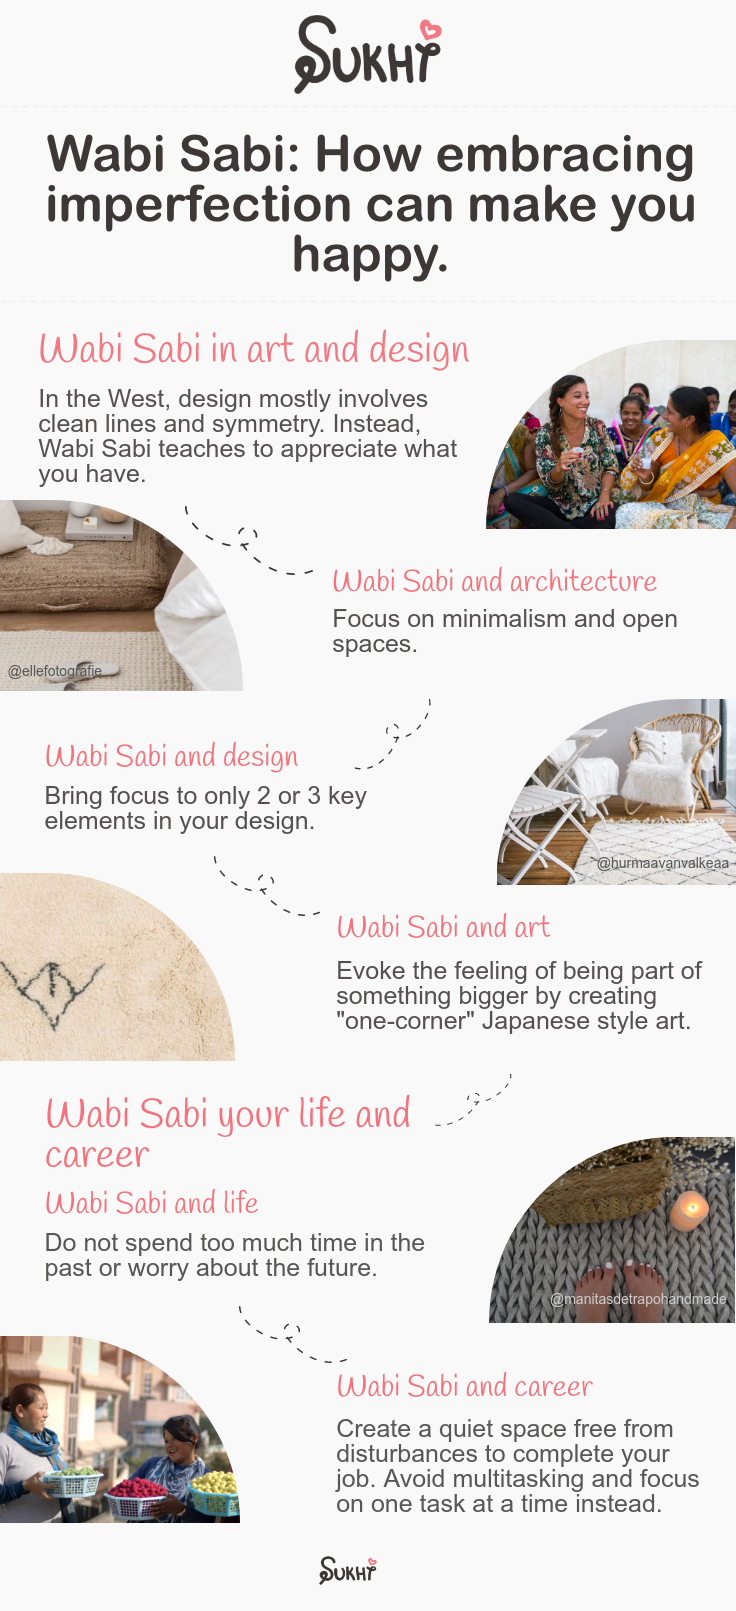 wabi-sabi-ancient-philosophy-what-it-means